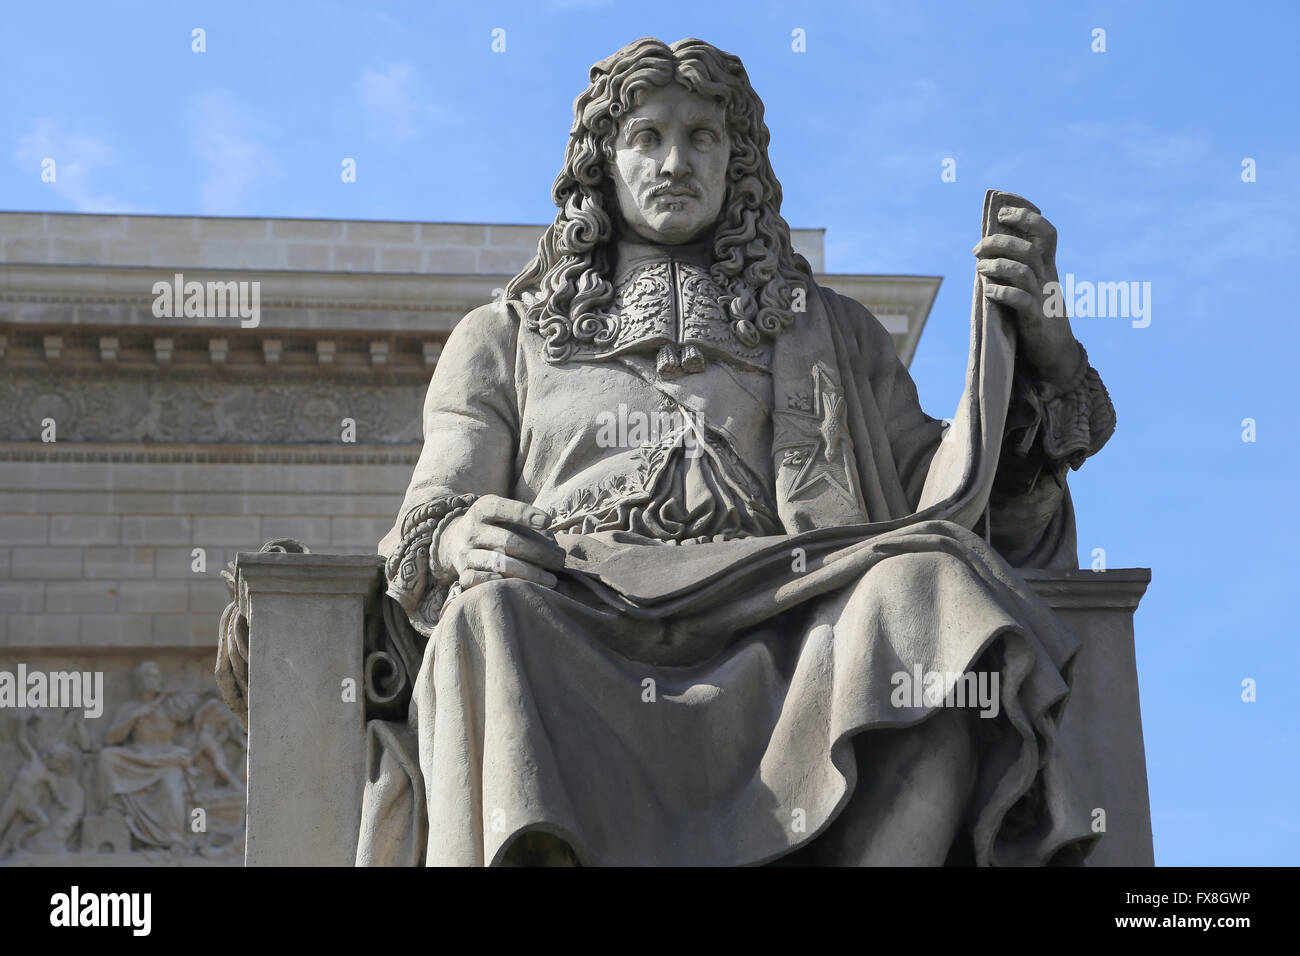 Jean-Baptiste Colbert (1619-1683). French politician. Minister of Finances 1665-1683 under the rule of King Louis - Stock Image